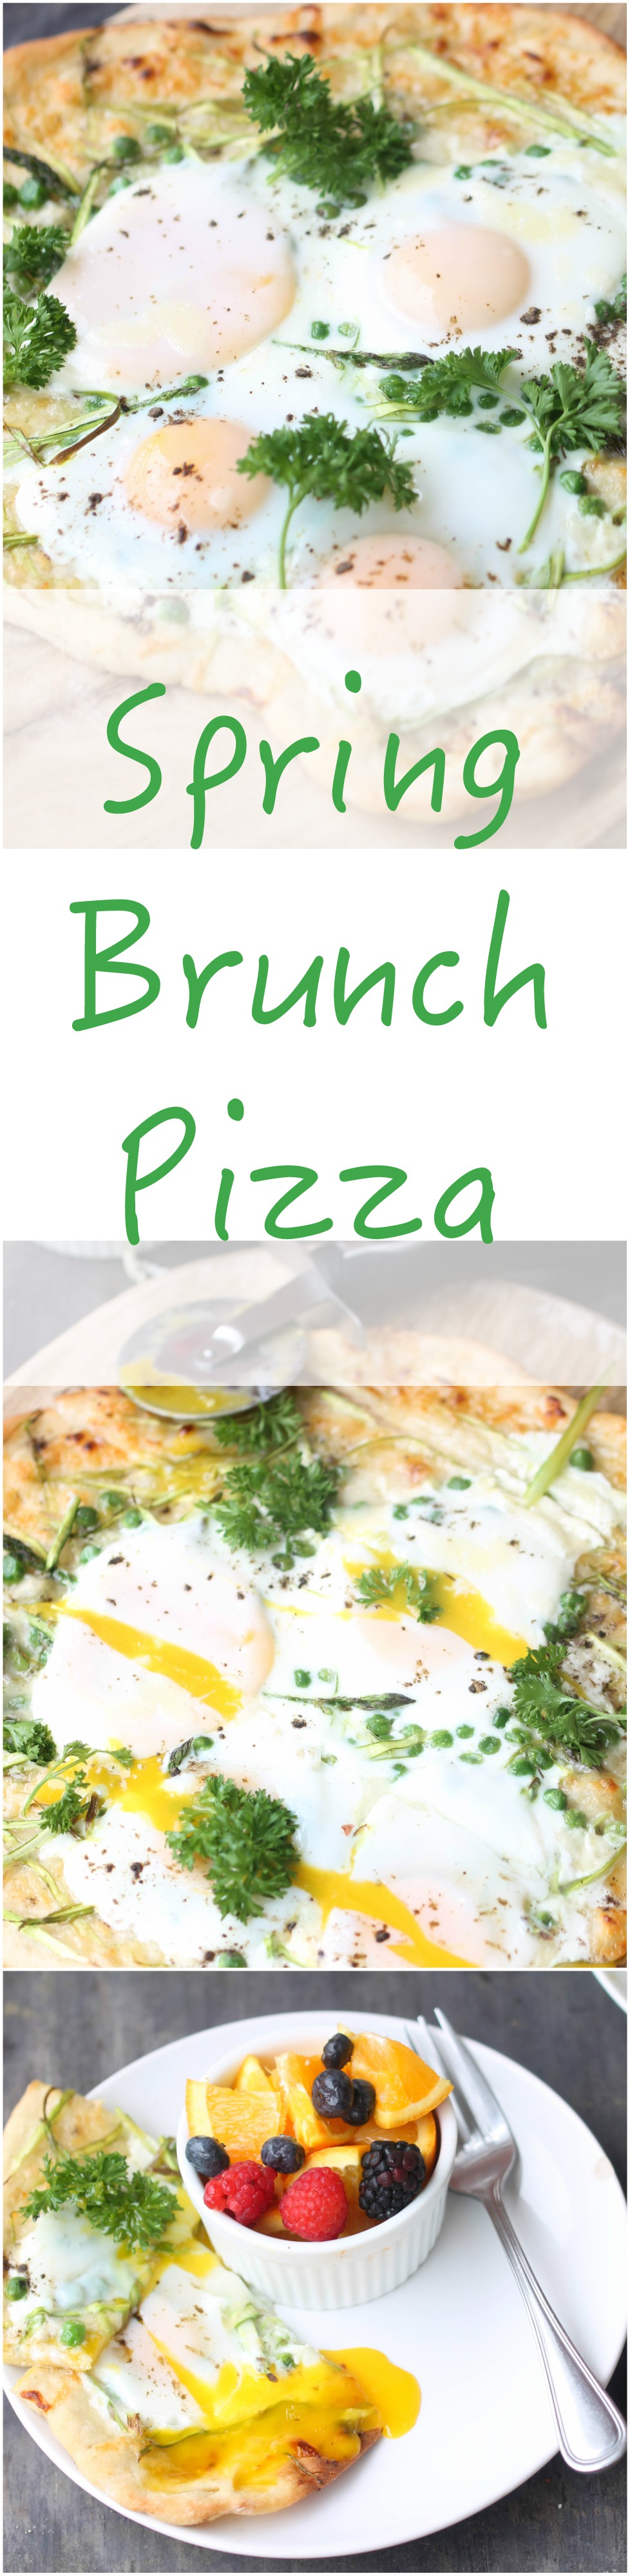 Switch up your brunch game with Spring Brunch Pizza! Simple ingredients, flexible, and enjoyed by everyone.